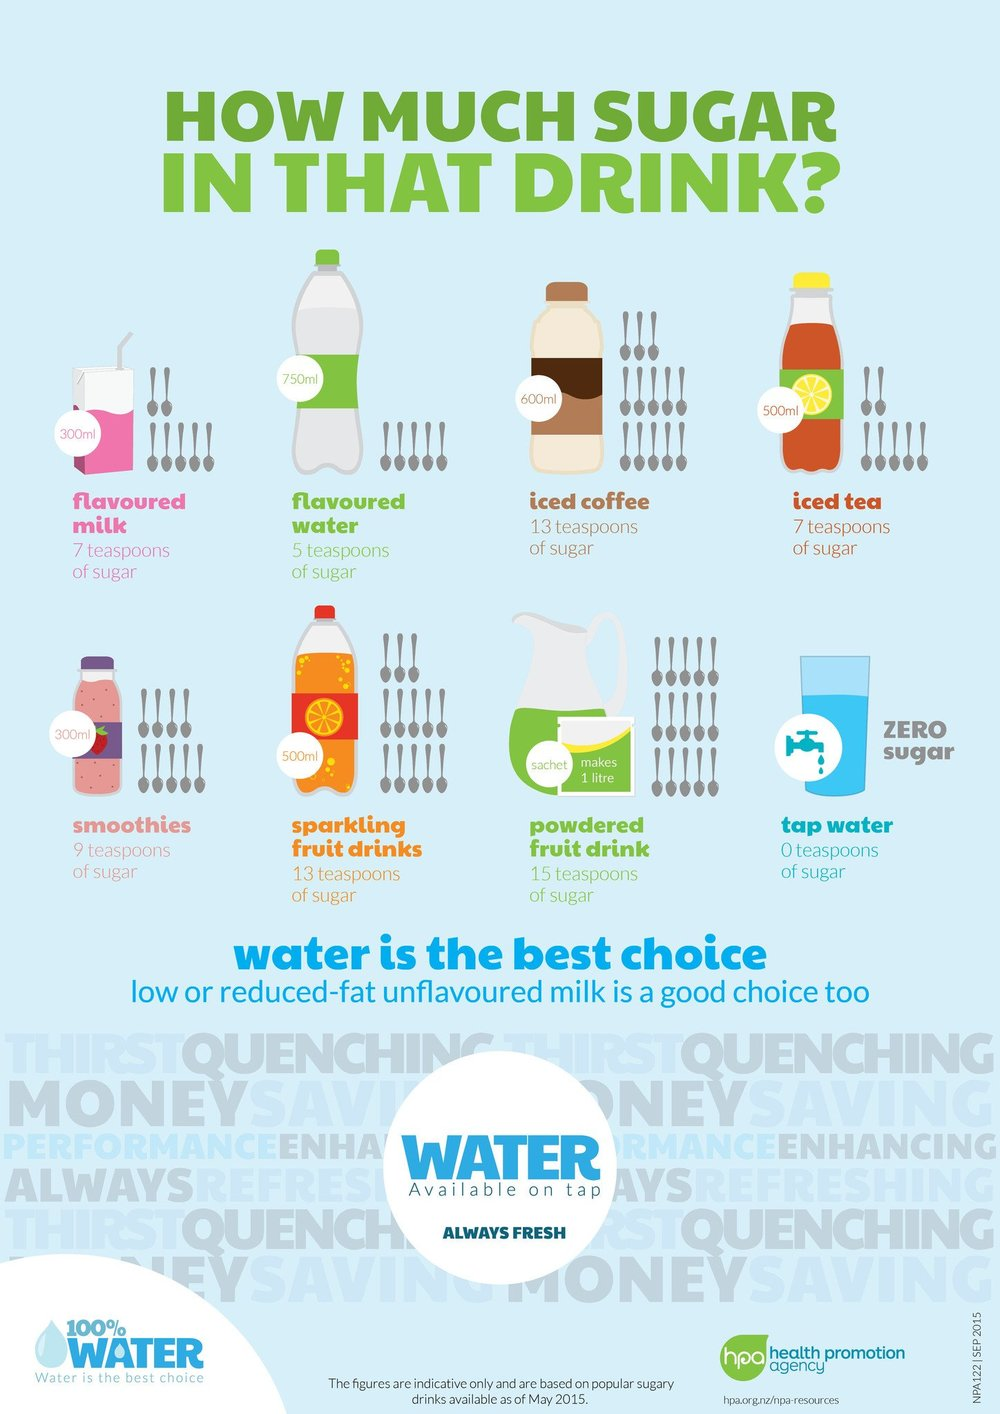 2.0_NPA122_How_Much_Sugar_in_that_Drink_A3_Infographic_Revised_Sept_2015_EB_2048x2048.jpg